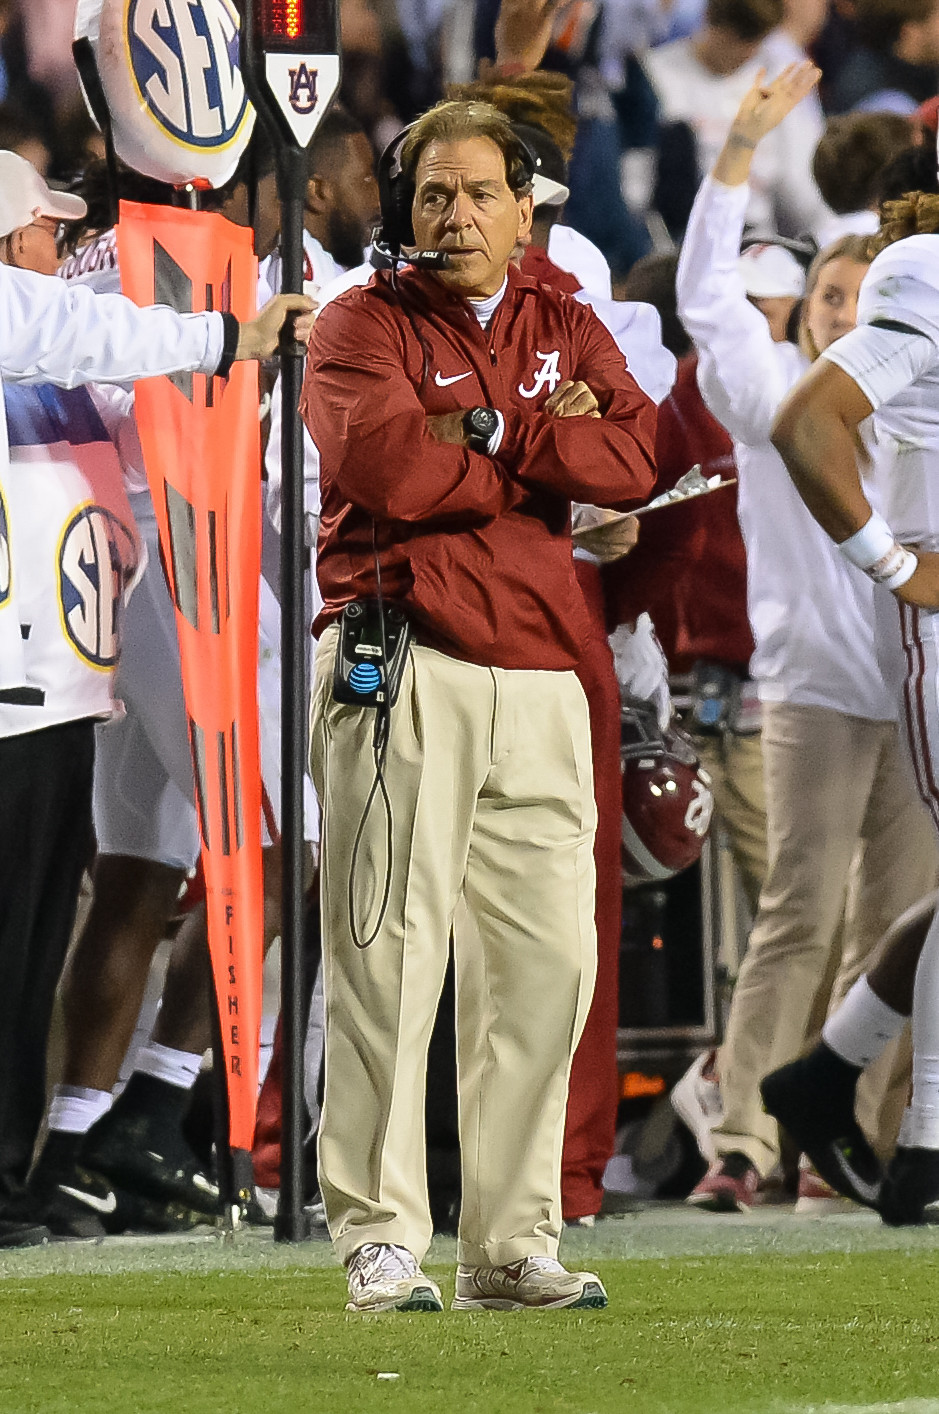 Alabama Crimson Tide head coach Nick Saban looks on during the second half of Saturday's game, at Jordan-Hare Stadium.